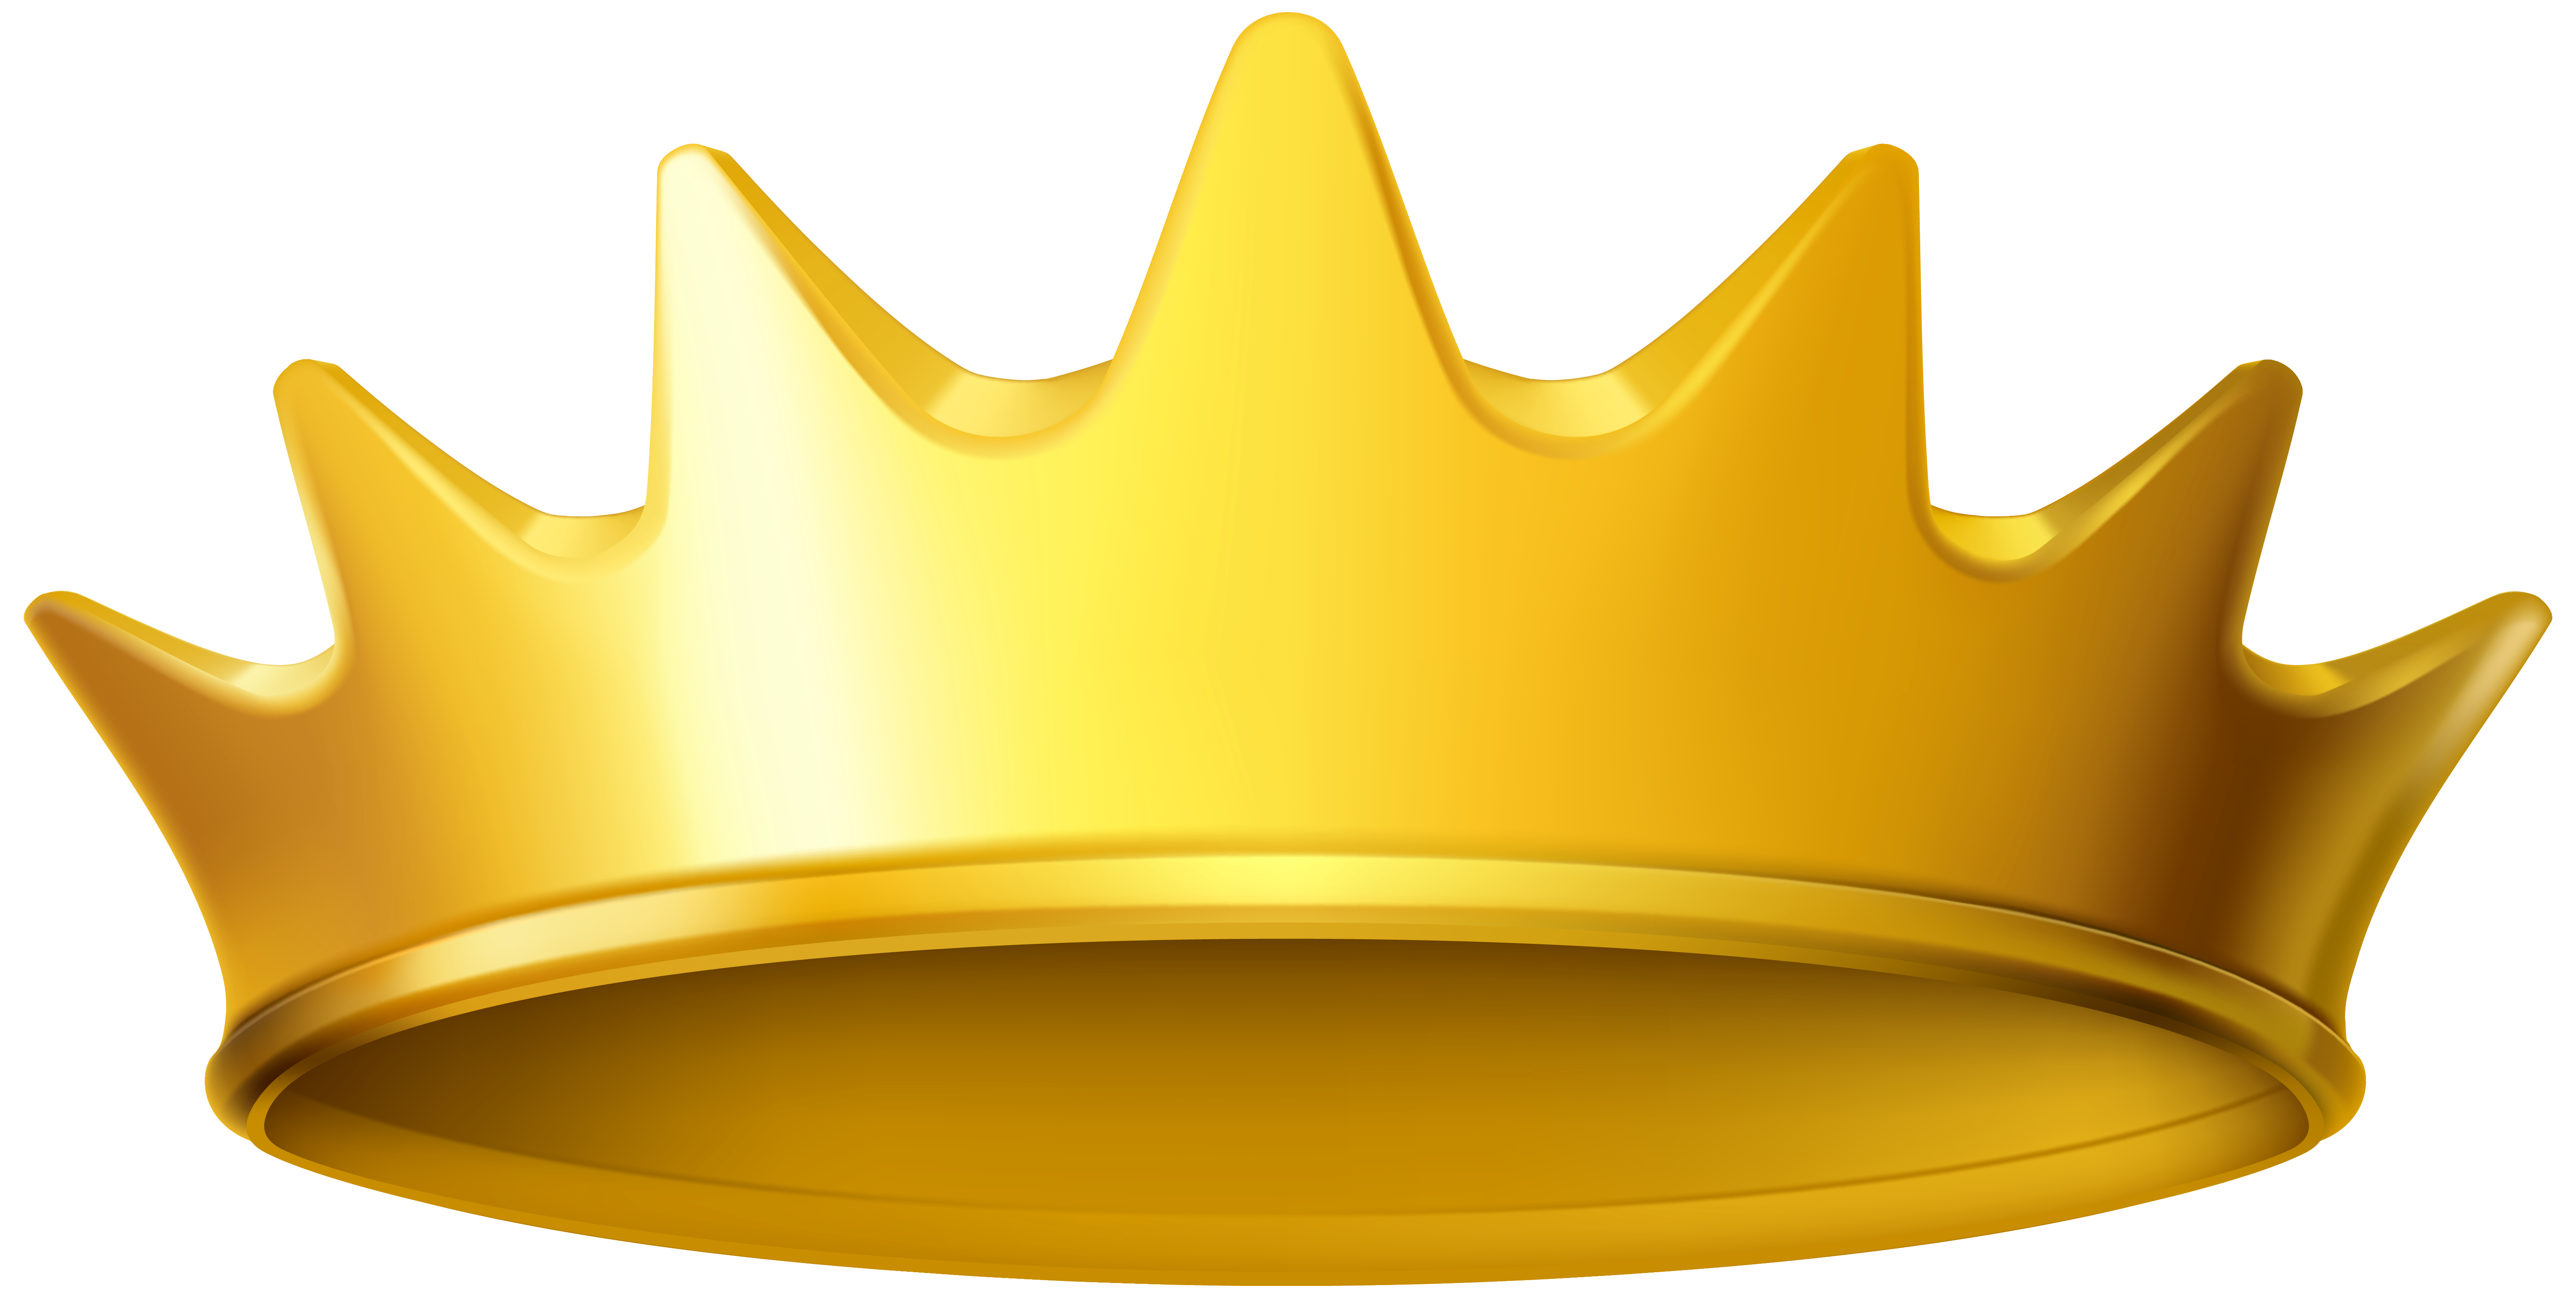 png royalty free download Crowns clipart. Golden crown png image